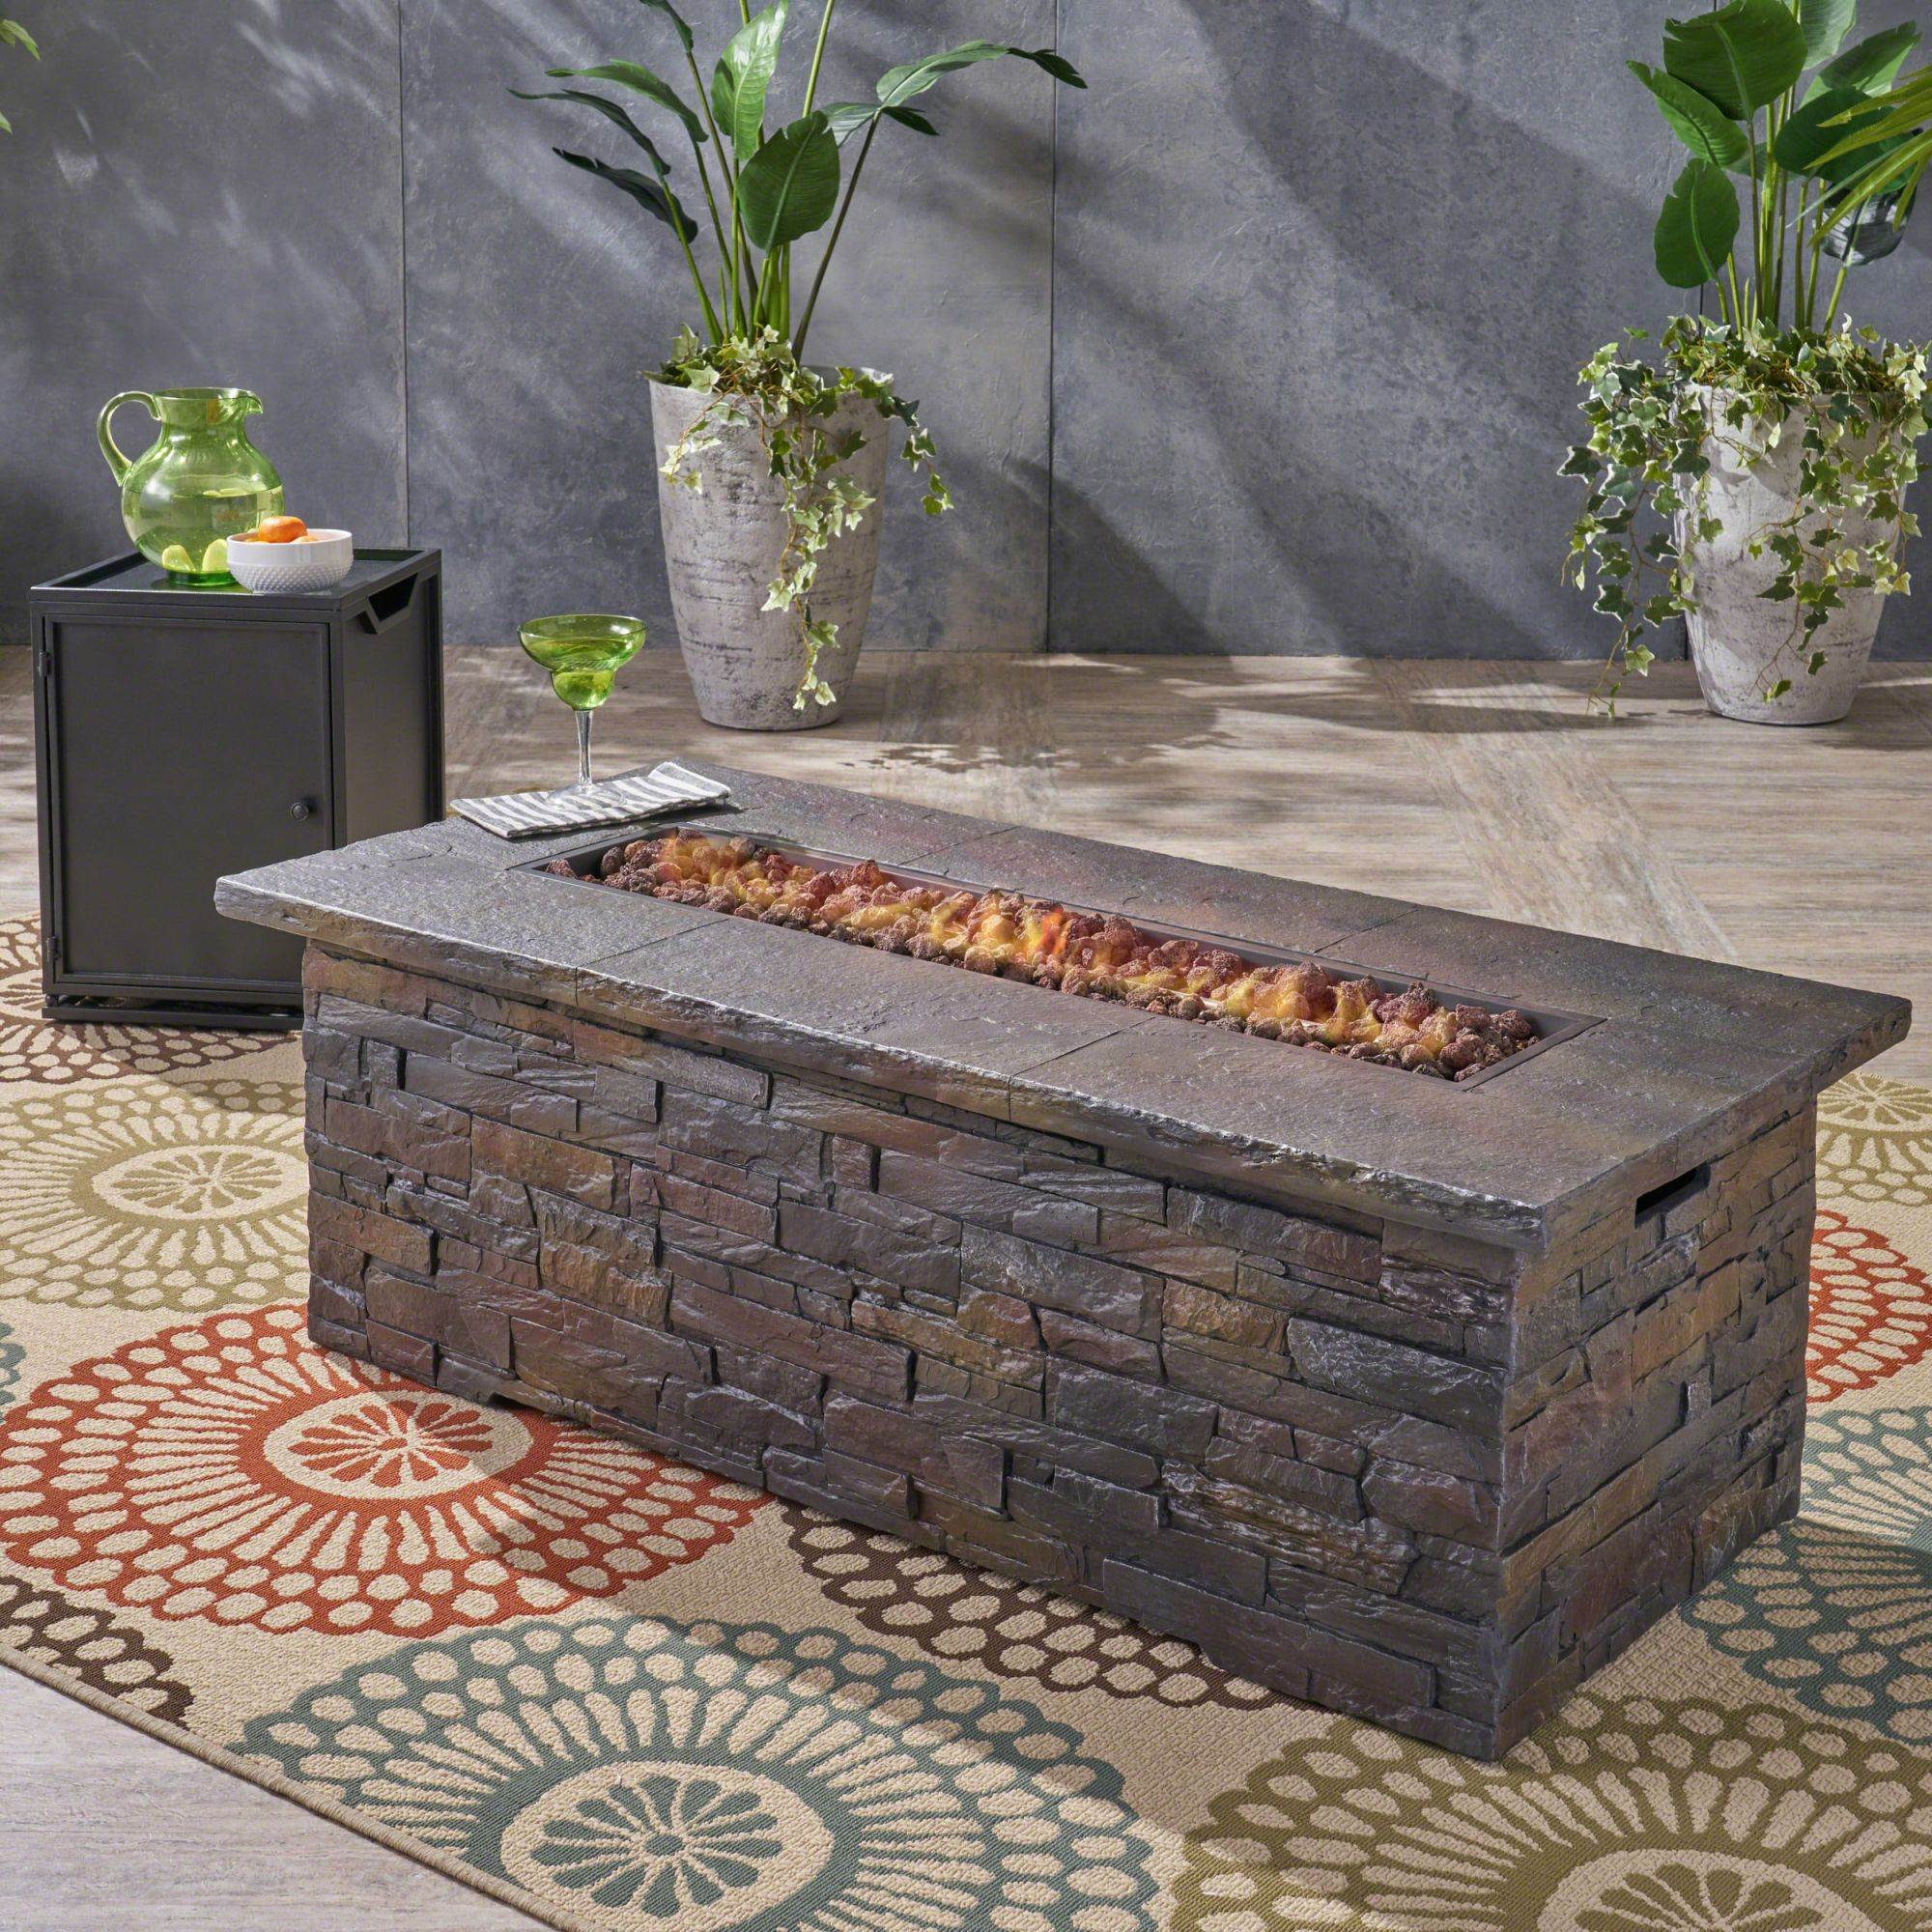 Home Loft Concepts Ritchie Outdoor Concrete Propane Fire Pit intended for Lovely Outdoor Propane Fire Pit